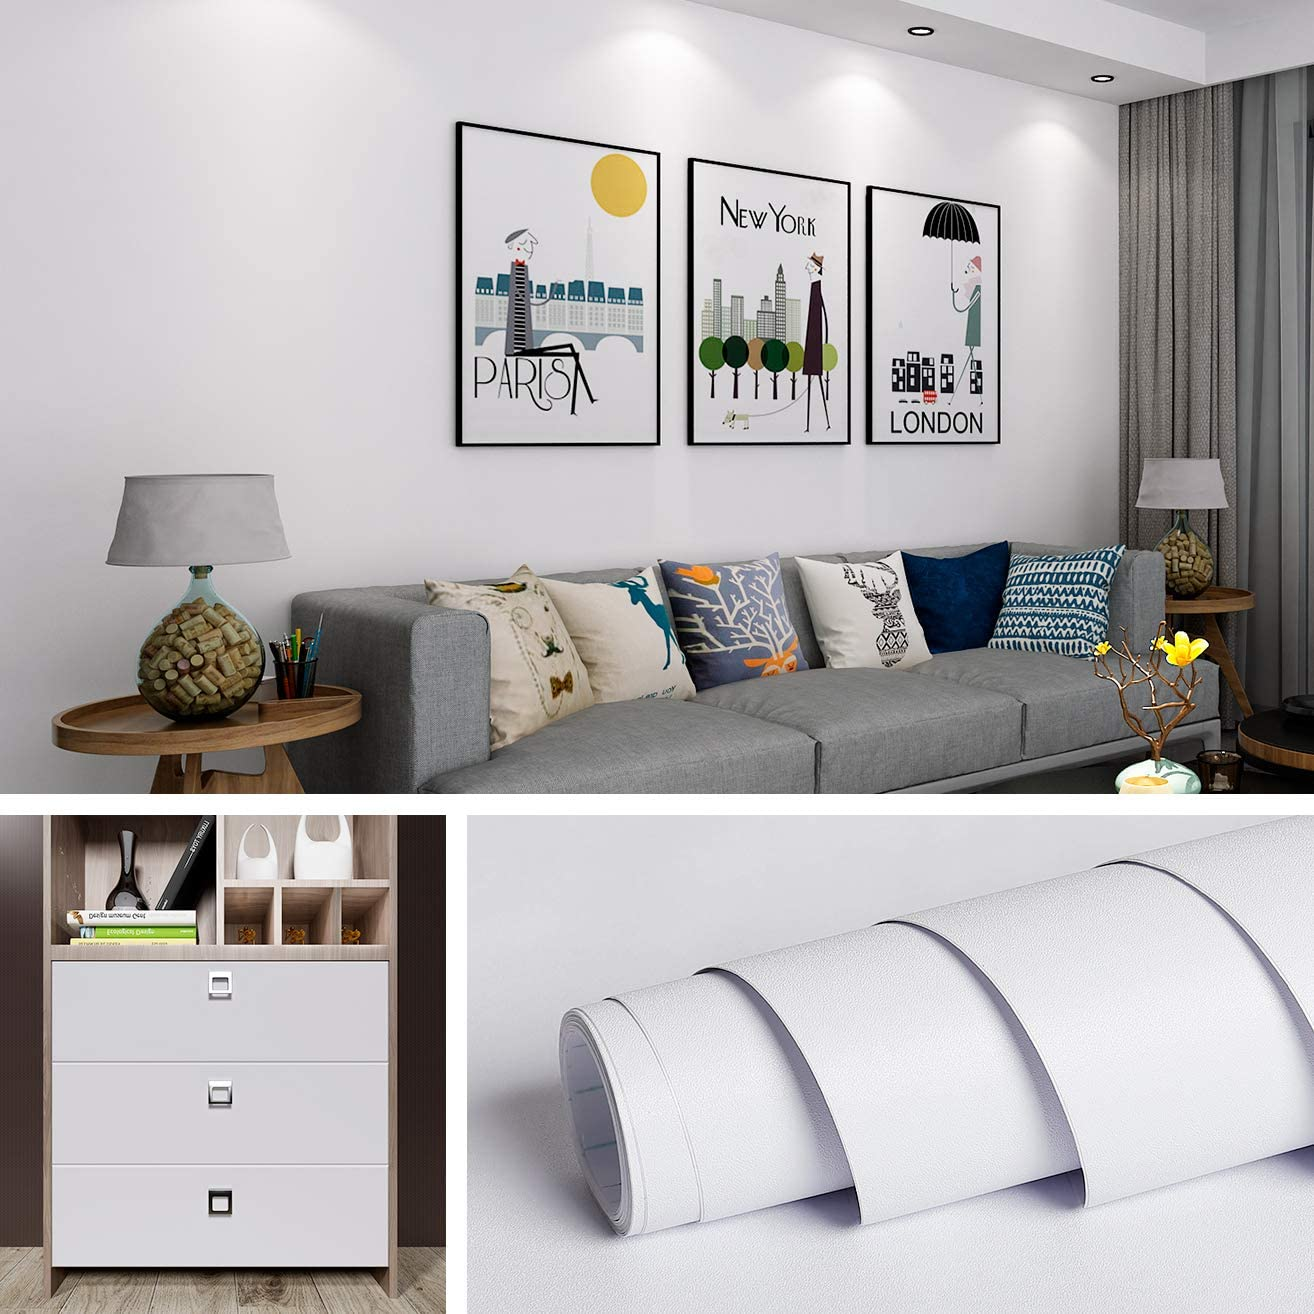 Spasm price Livelynine 15.8x394 Inch Removable White New Orleans Mall Wall Bedroom for Paper